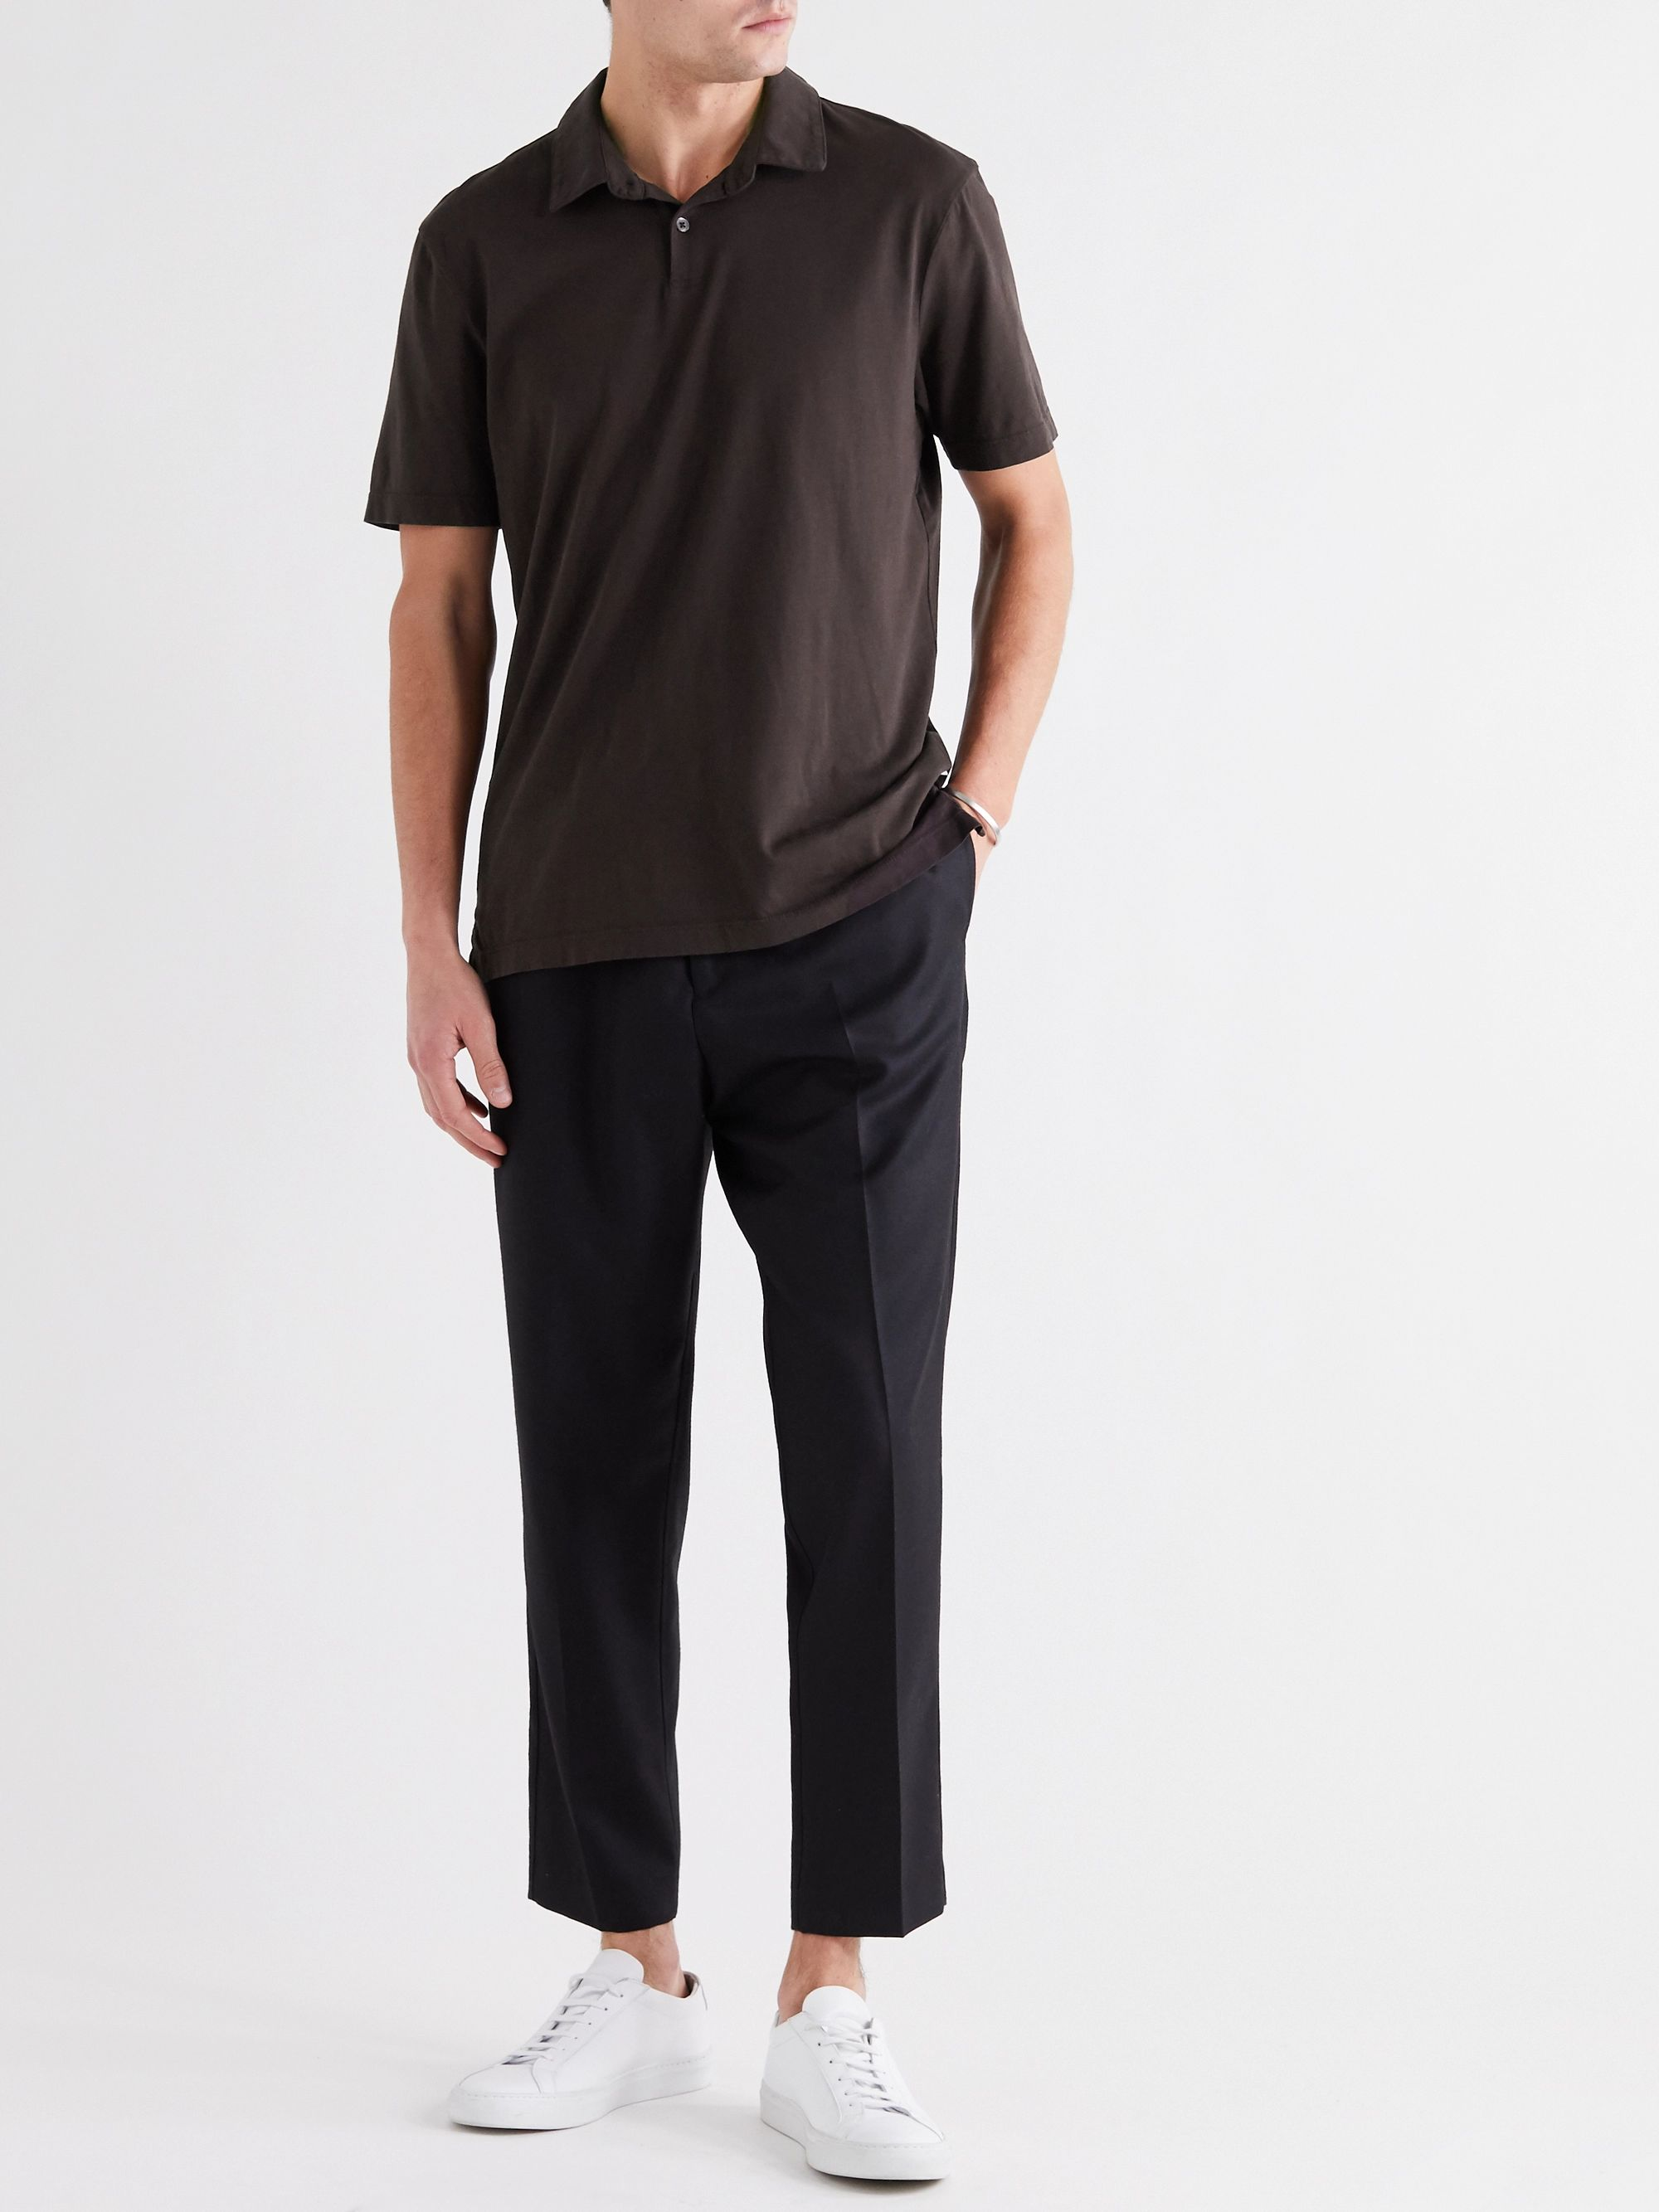 JAMES PERSE Supima Cotton-Jersey Polo Shirt